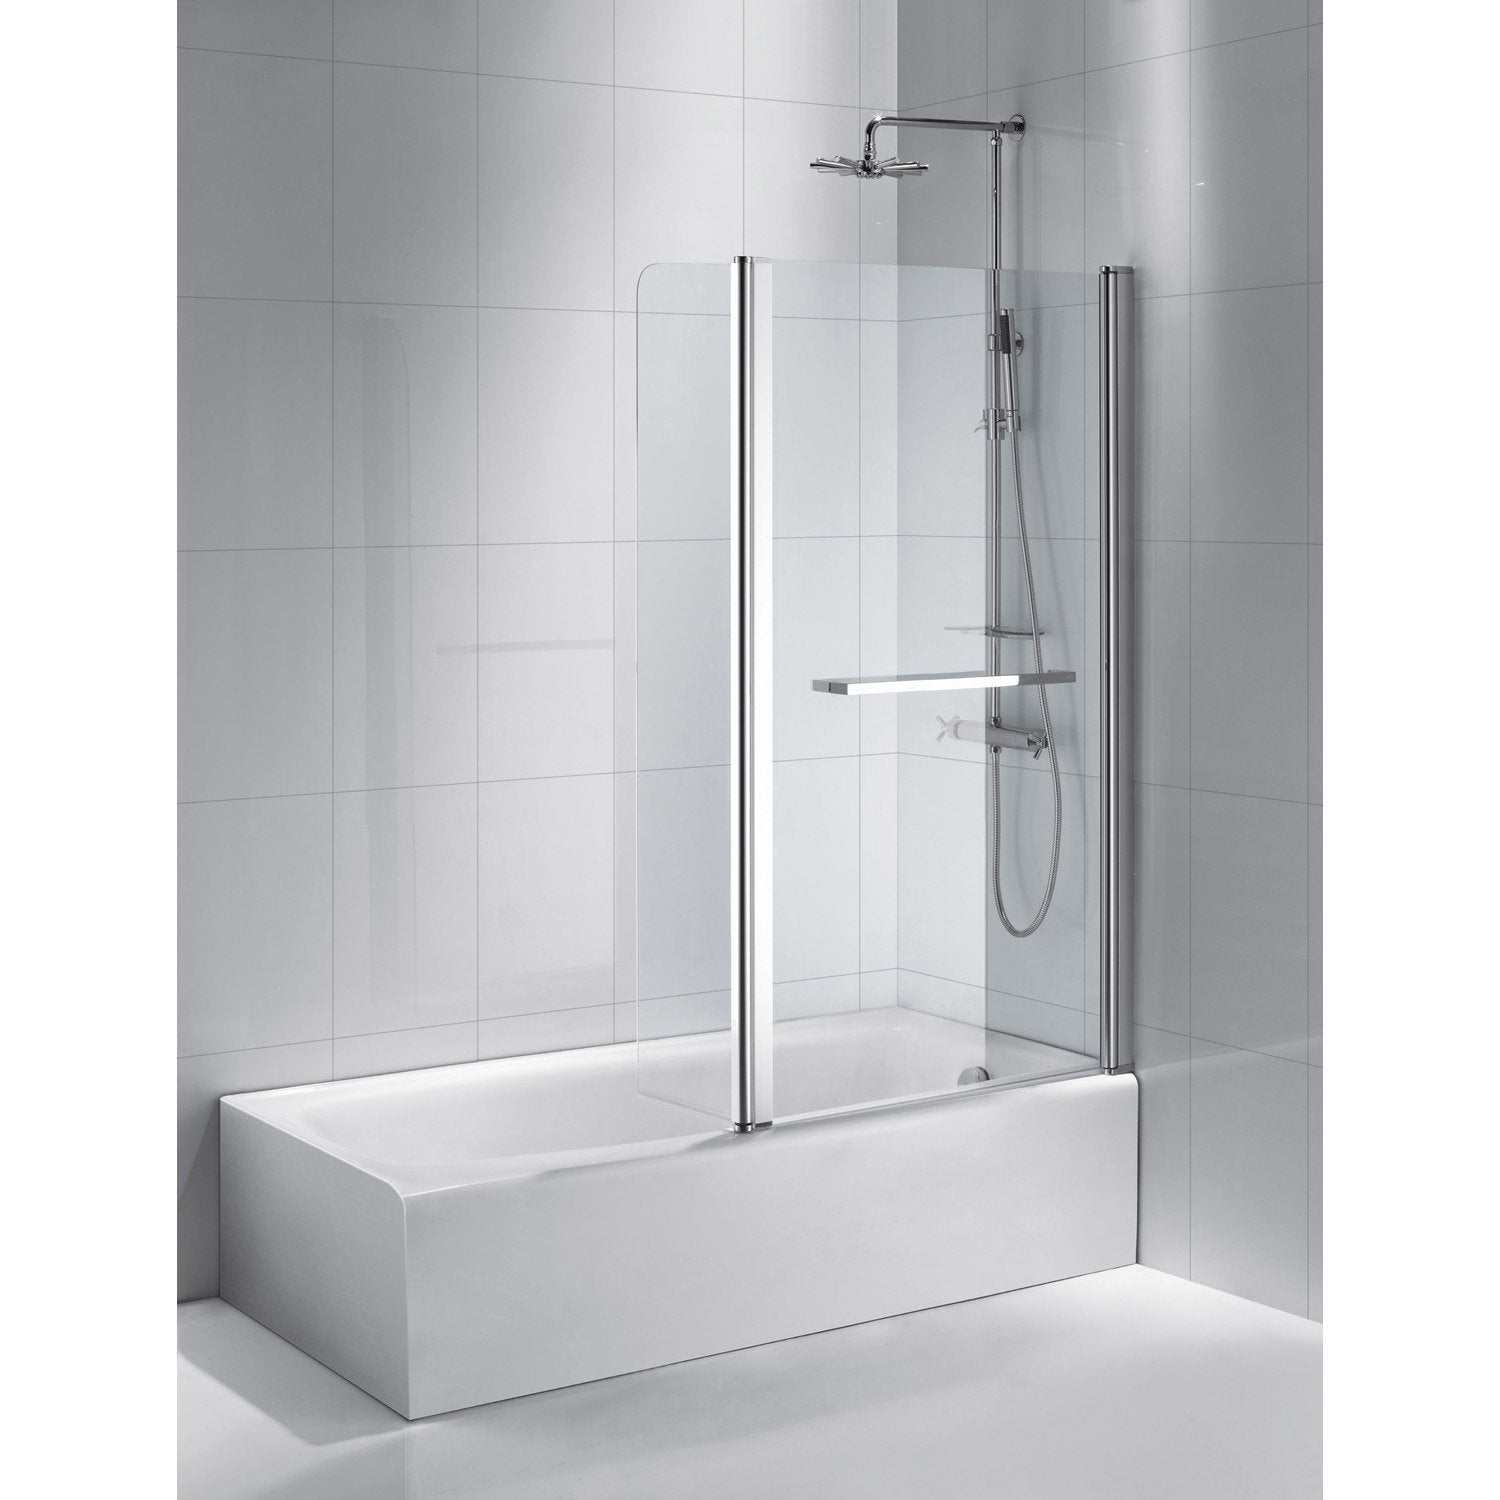 Pare baignoire 2 volets verre de s curit 6 mm transparent purity2 leroy merlin - Pare douche leroy merlin ...